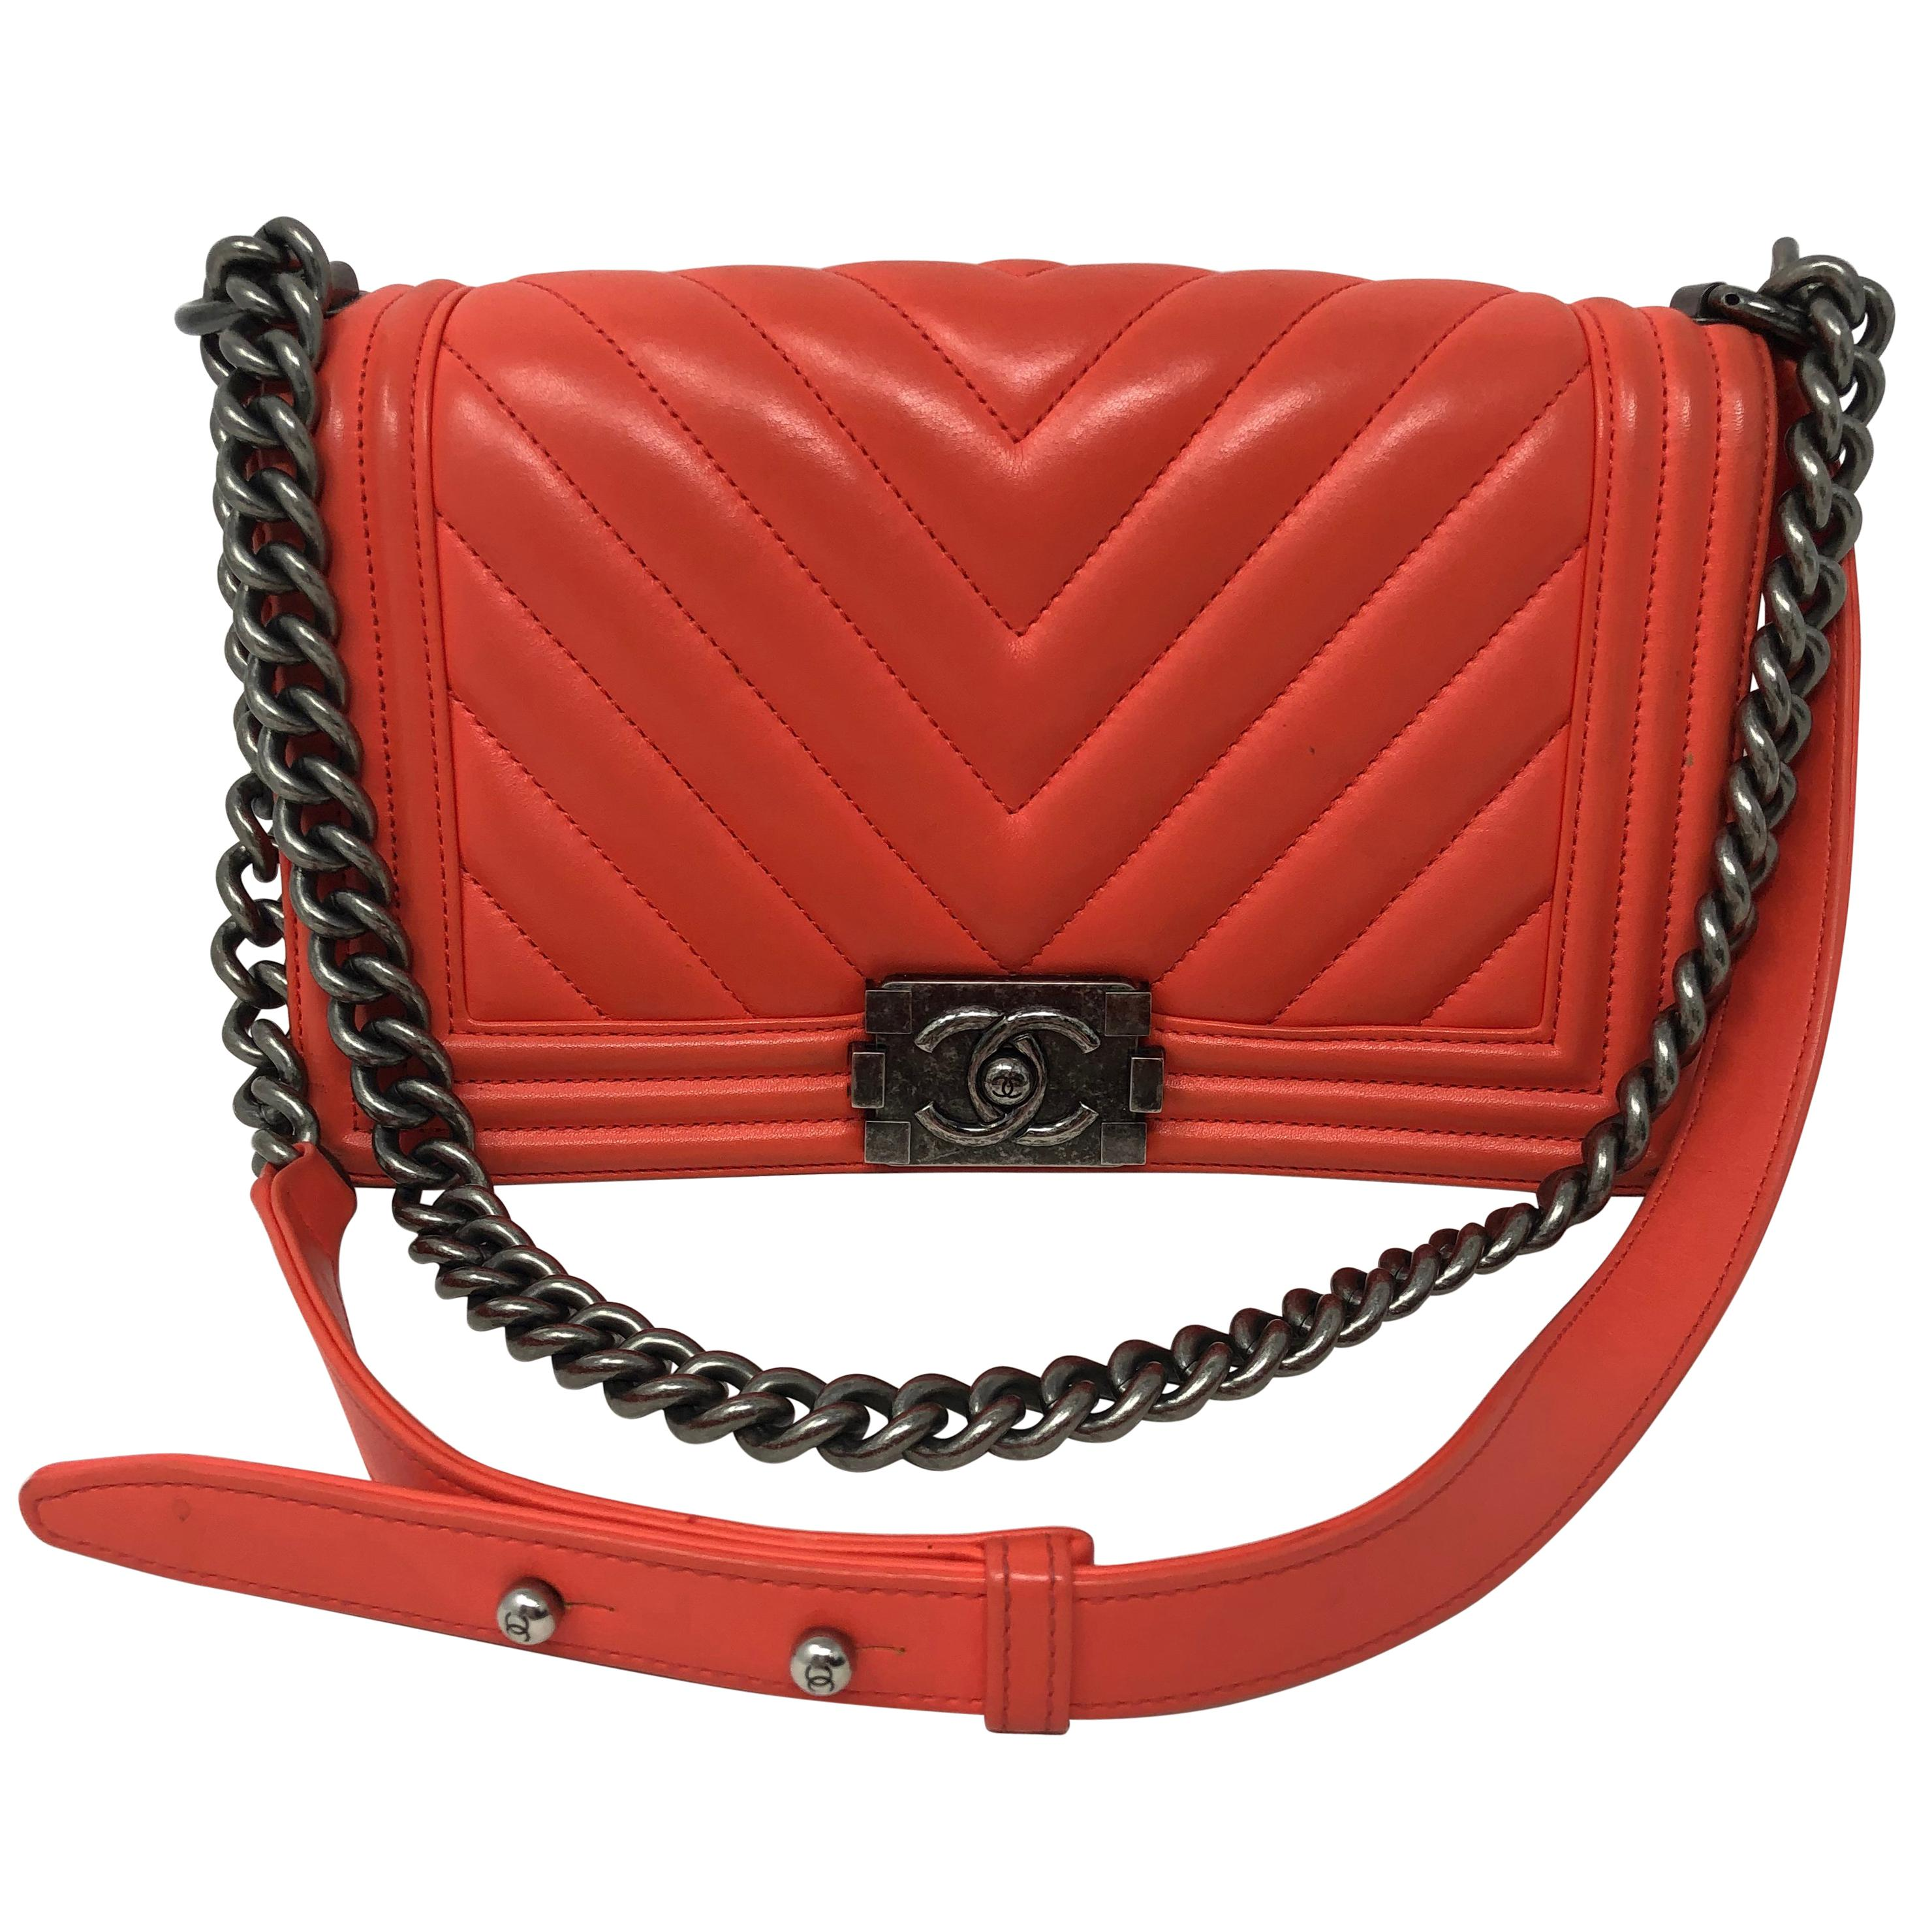 5ae82892256f Chanel Red Caviar WOC Wallet on a Chain at 1stdibs